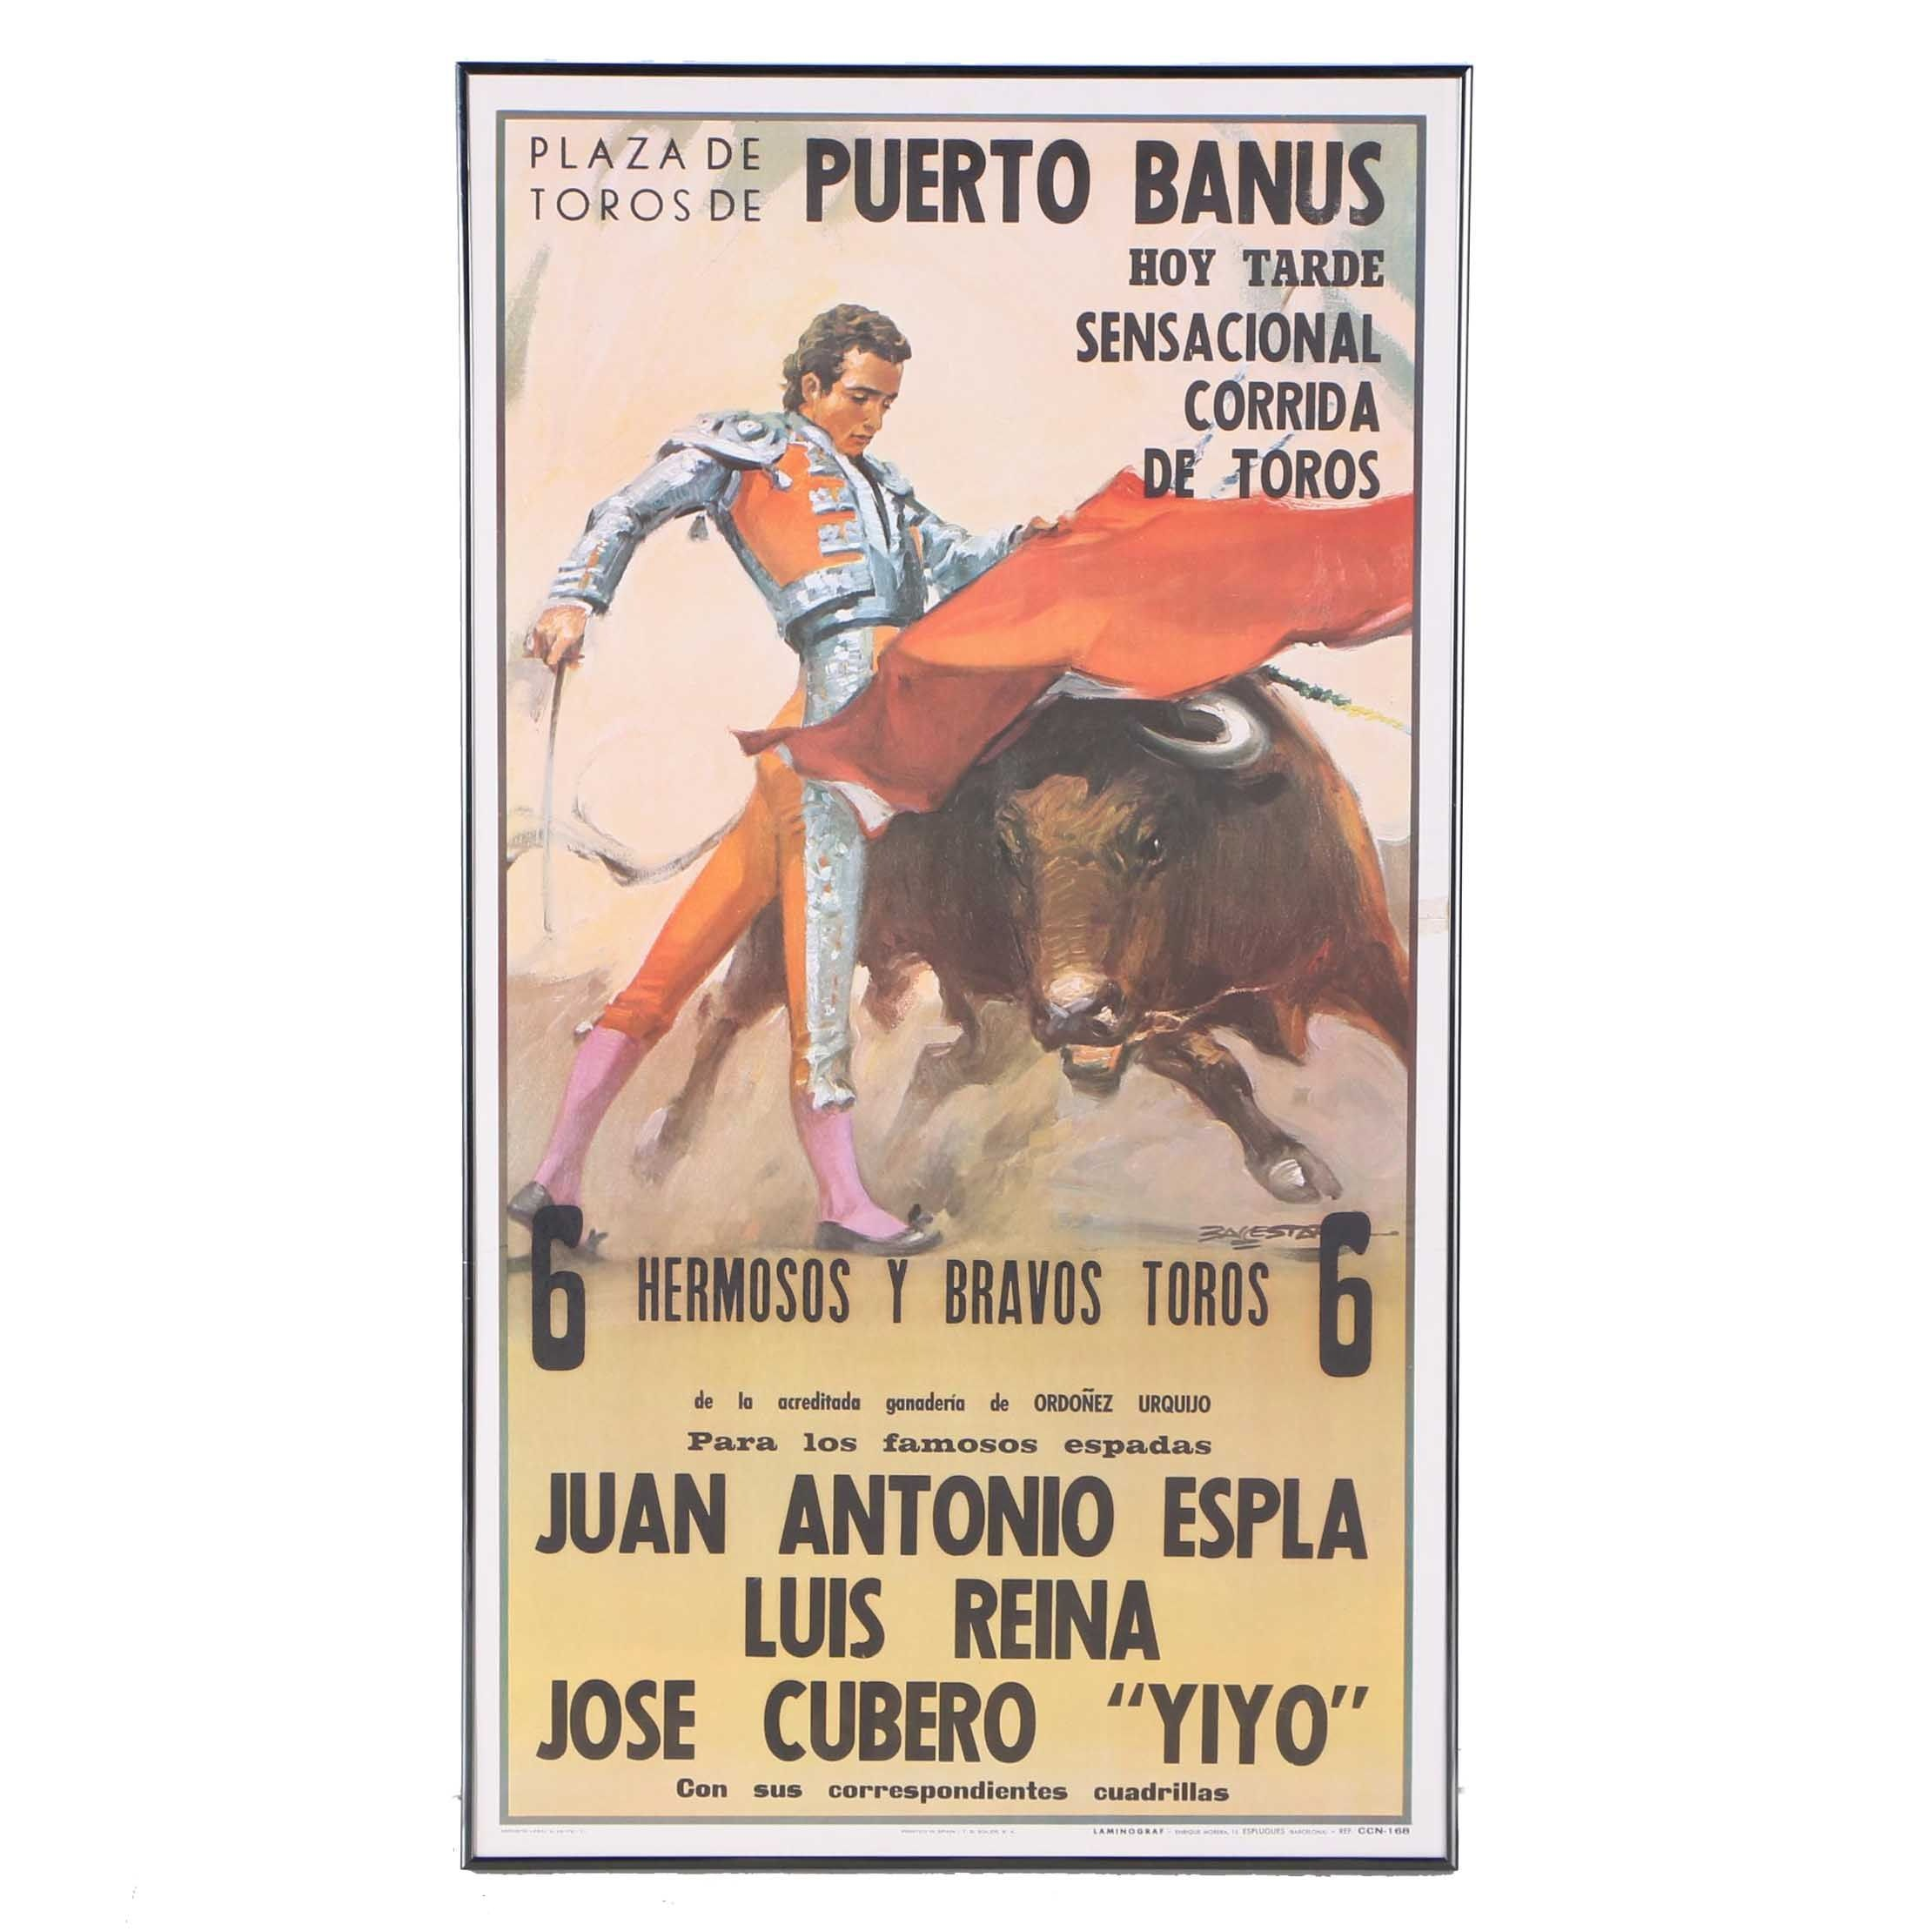 Spanish Vintage Style Reproduction Poster on Paper for a Plaza de Toros de Puerto Banus Bullfight